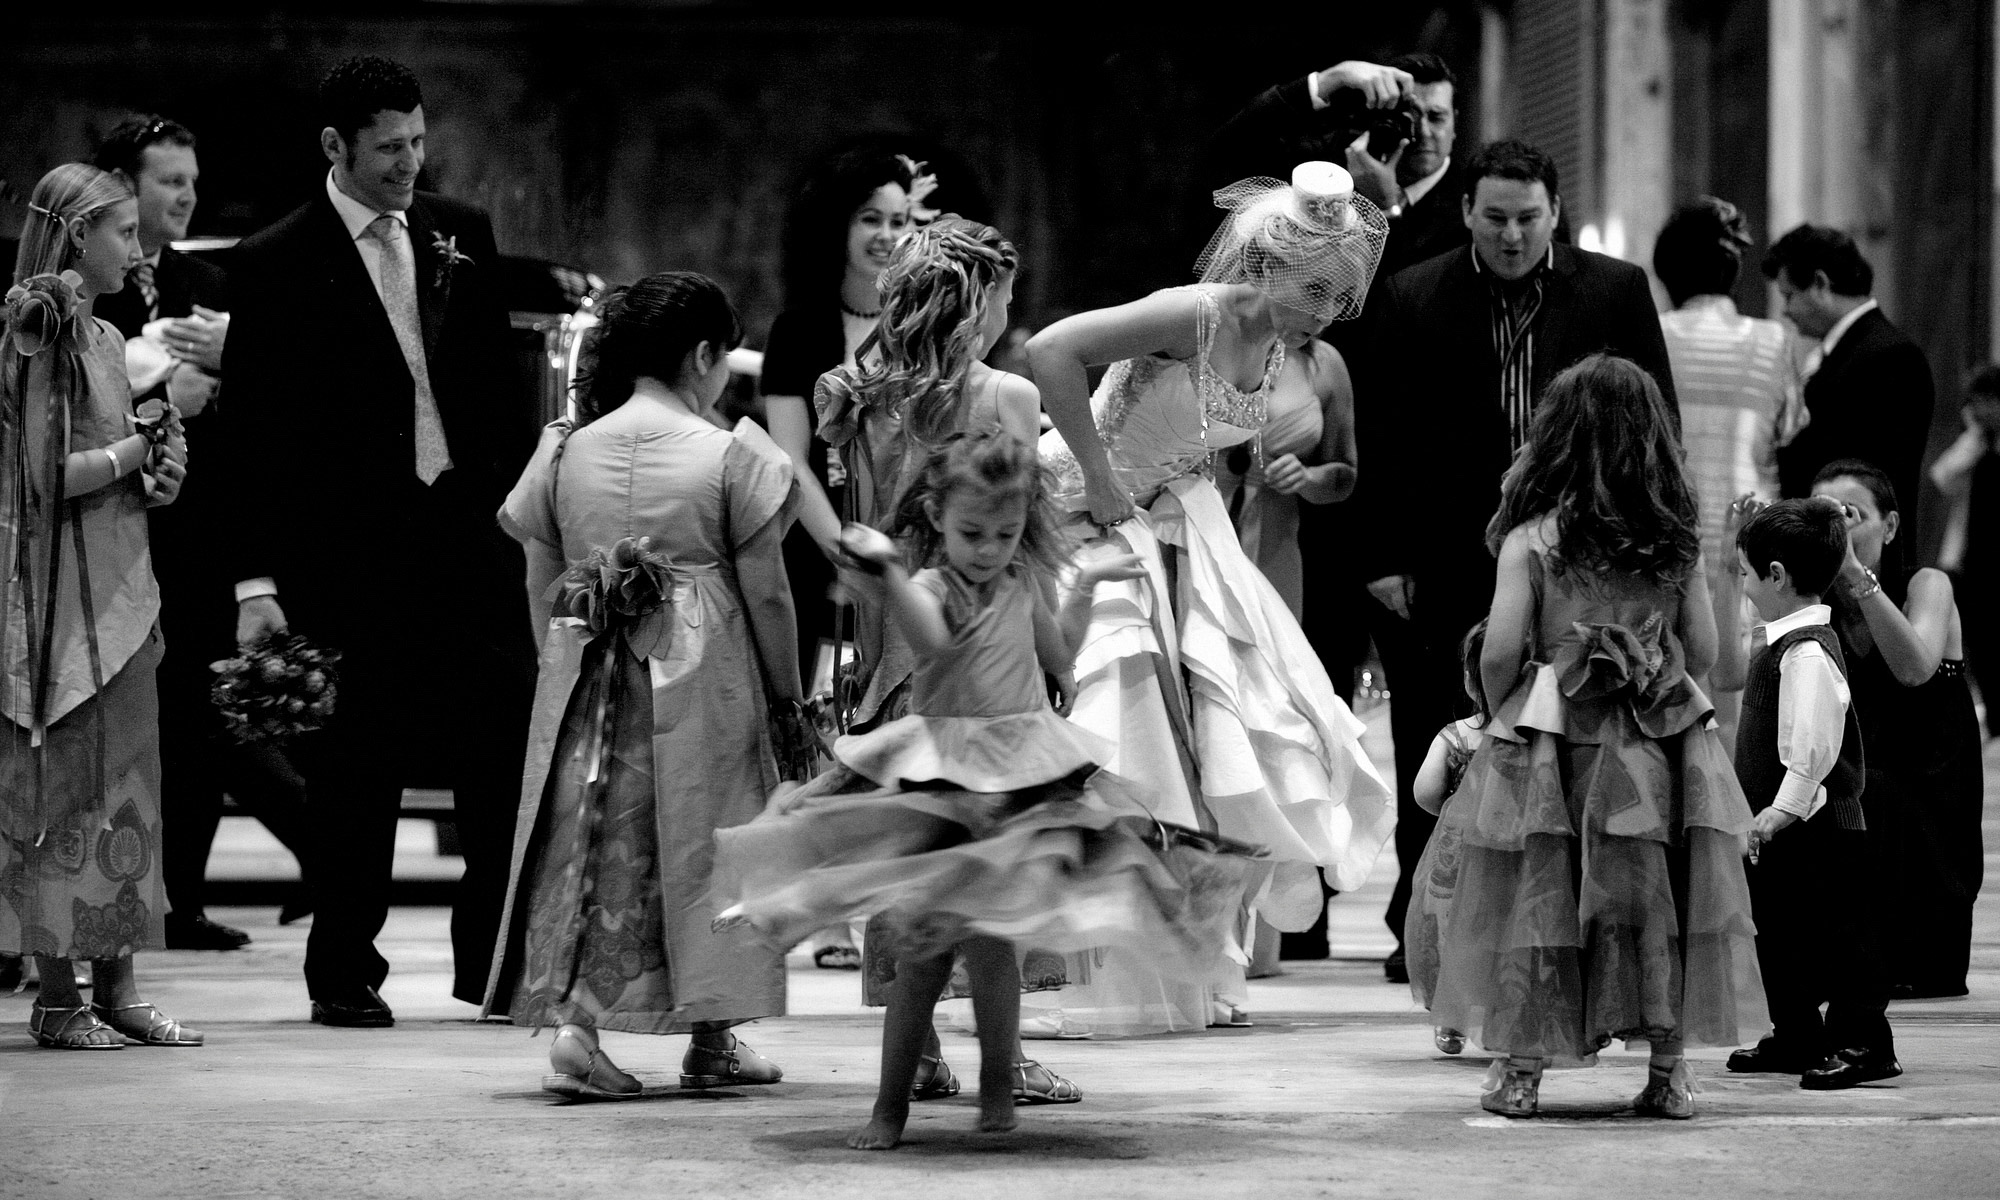 Fun bride with fascinator dancing with kids photo by Jerry Ghionis